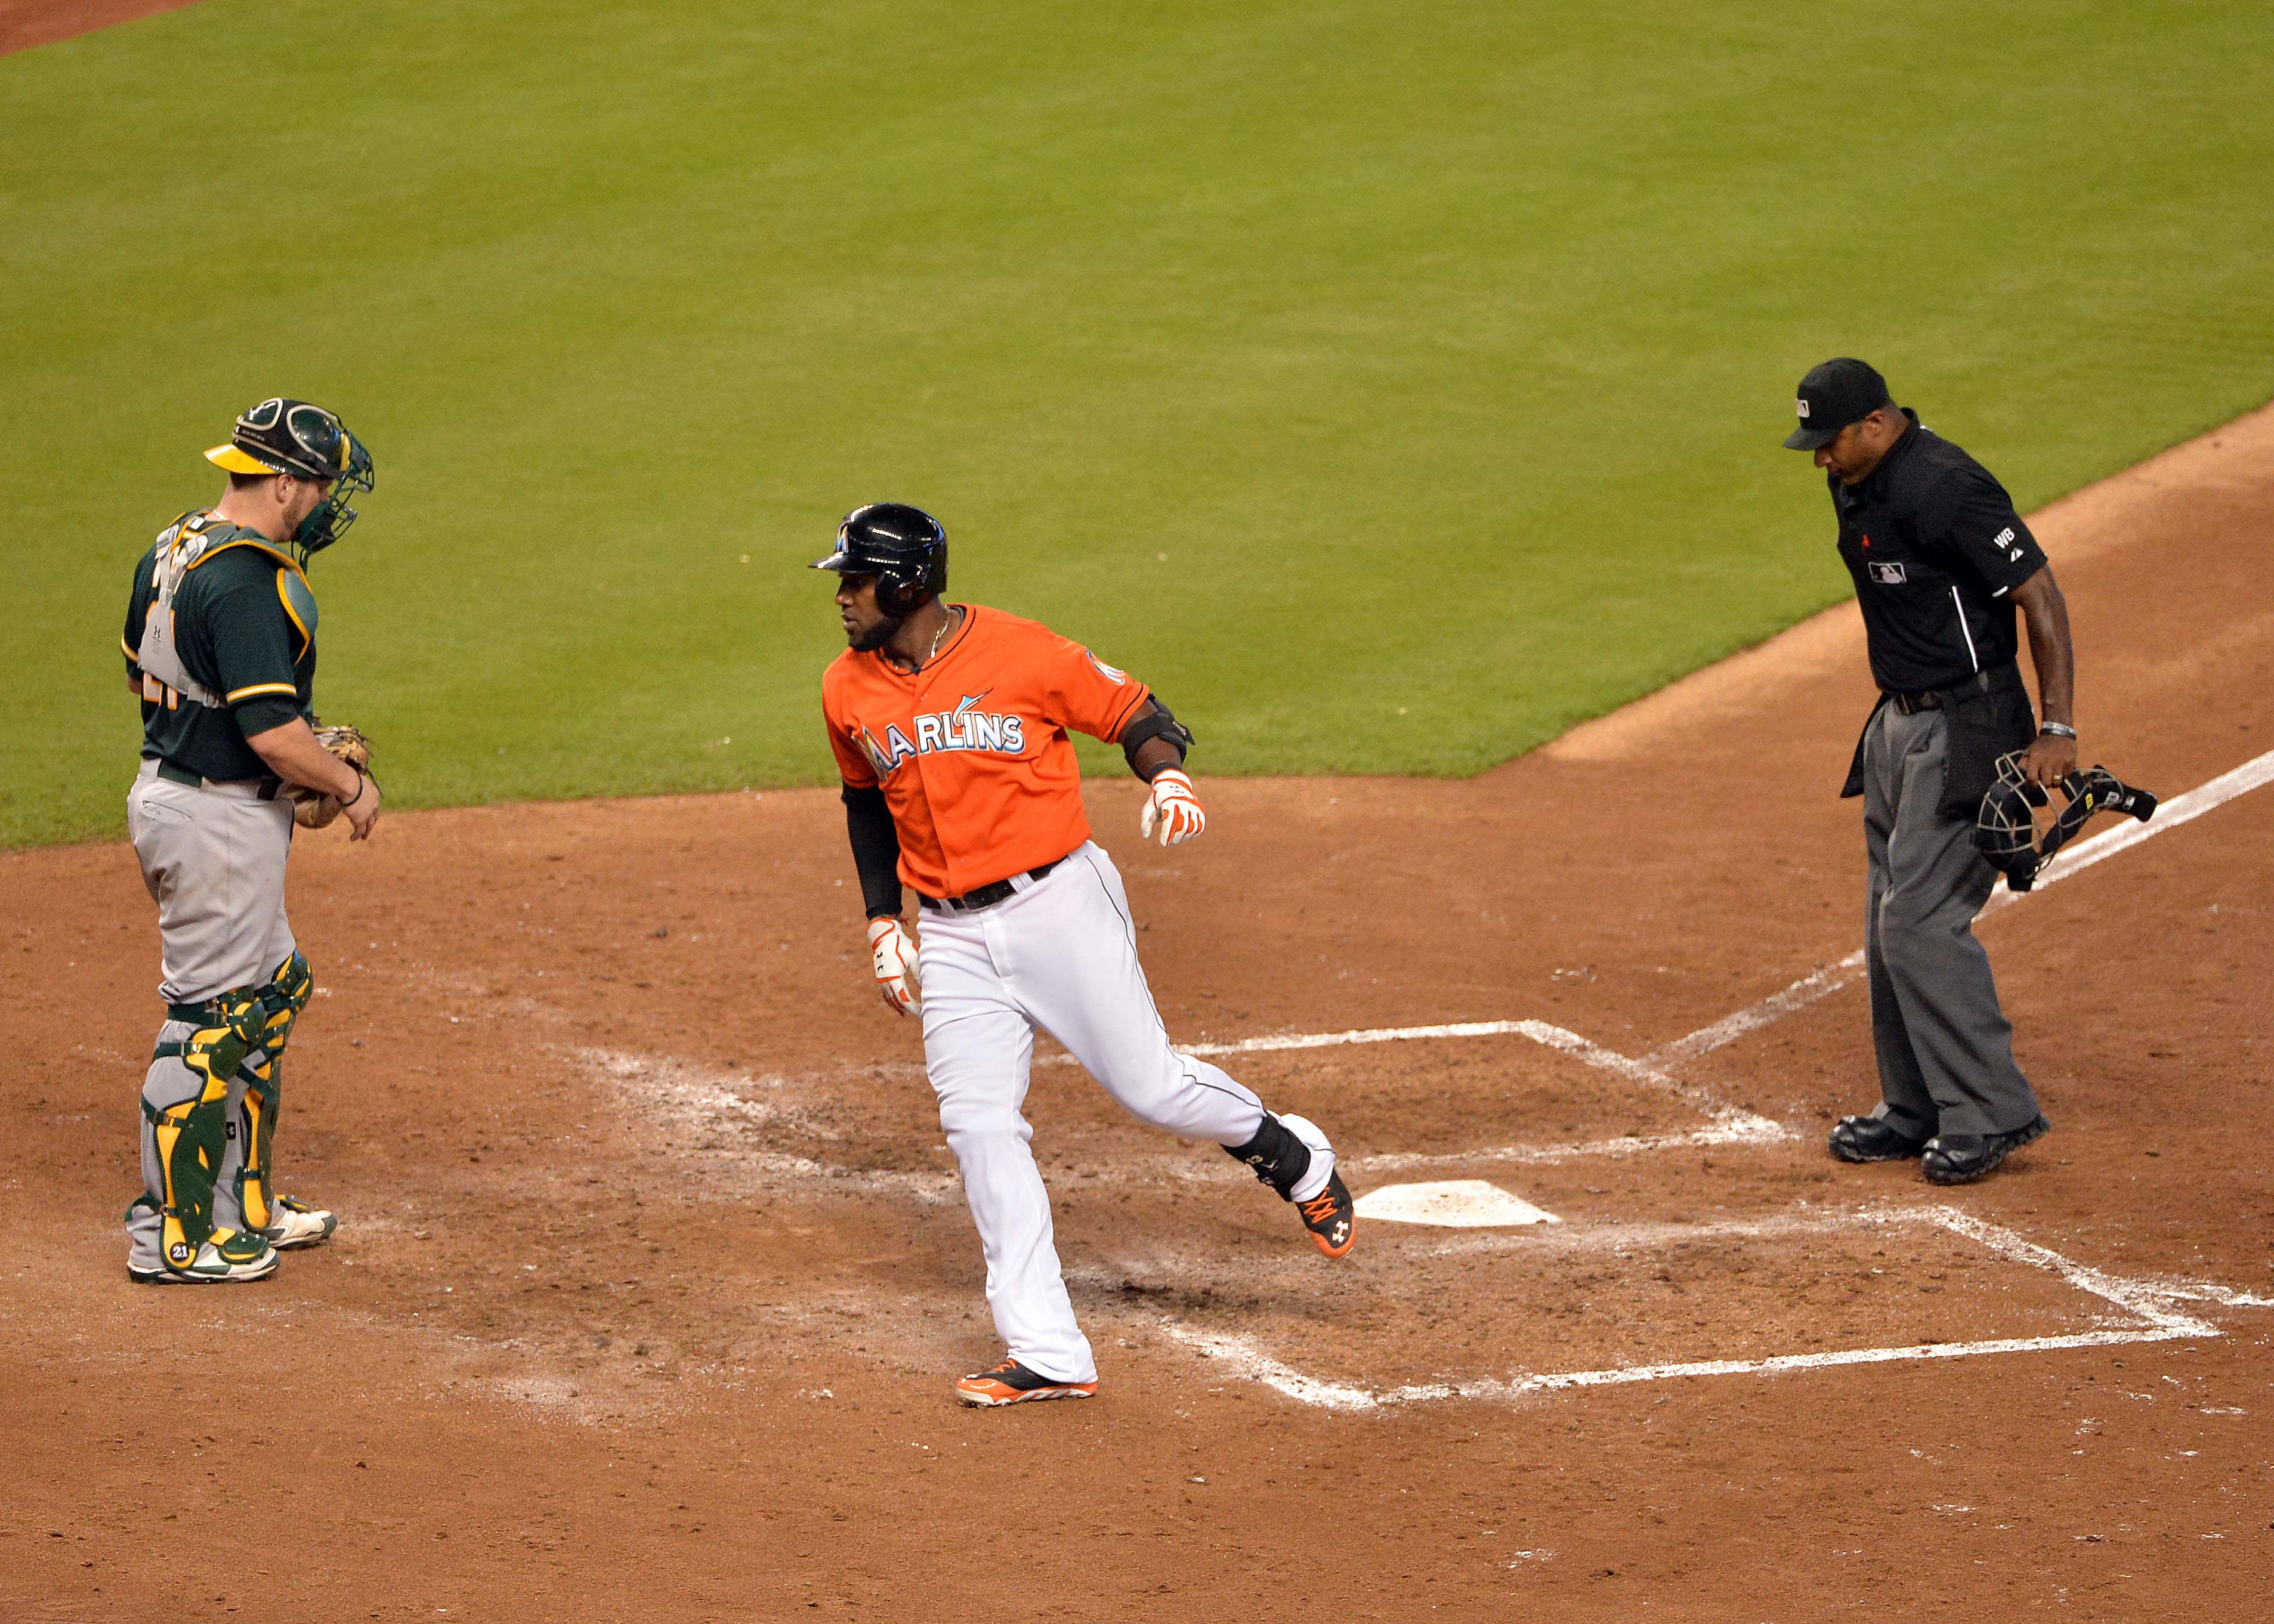 Ozuna after striking out against the A's, he definitely did not just hit a dinger.